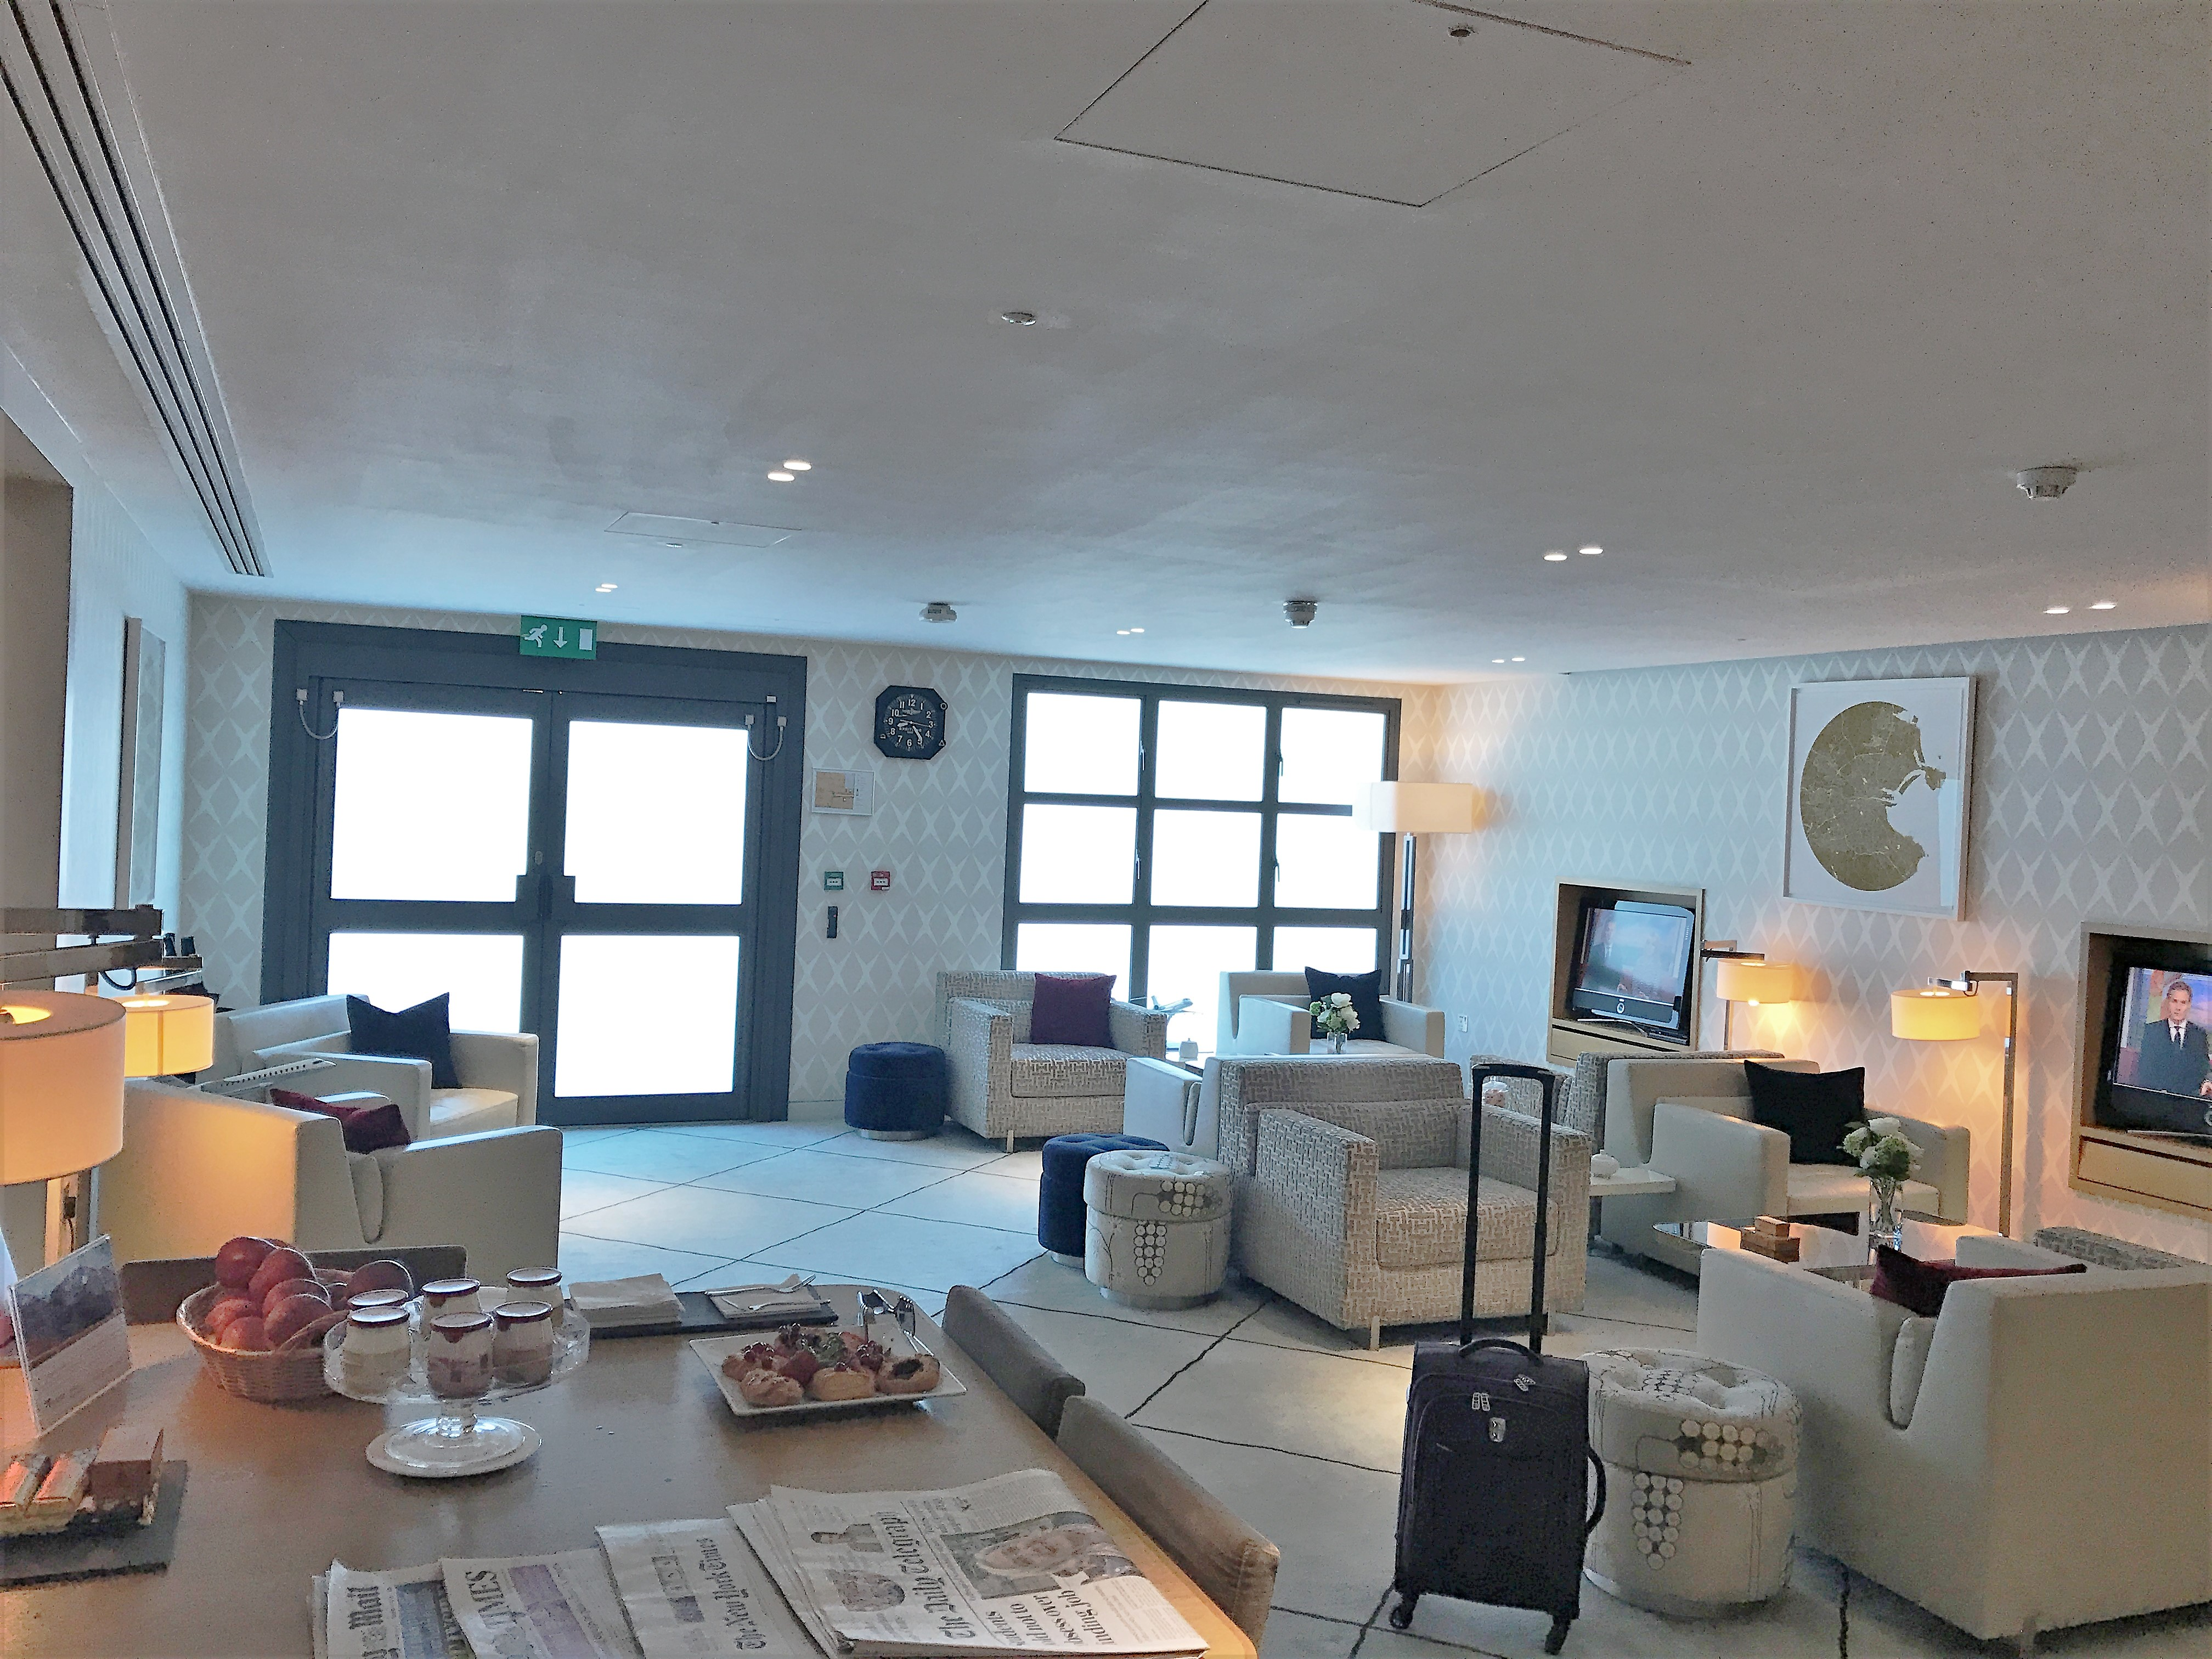 london city airport lounge review